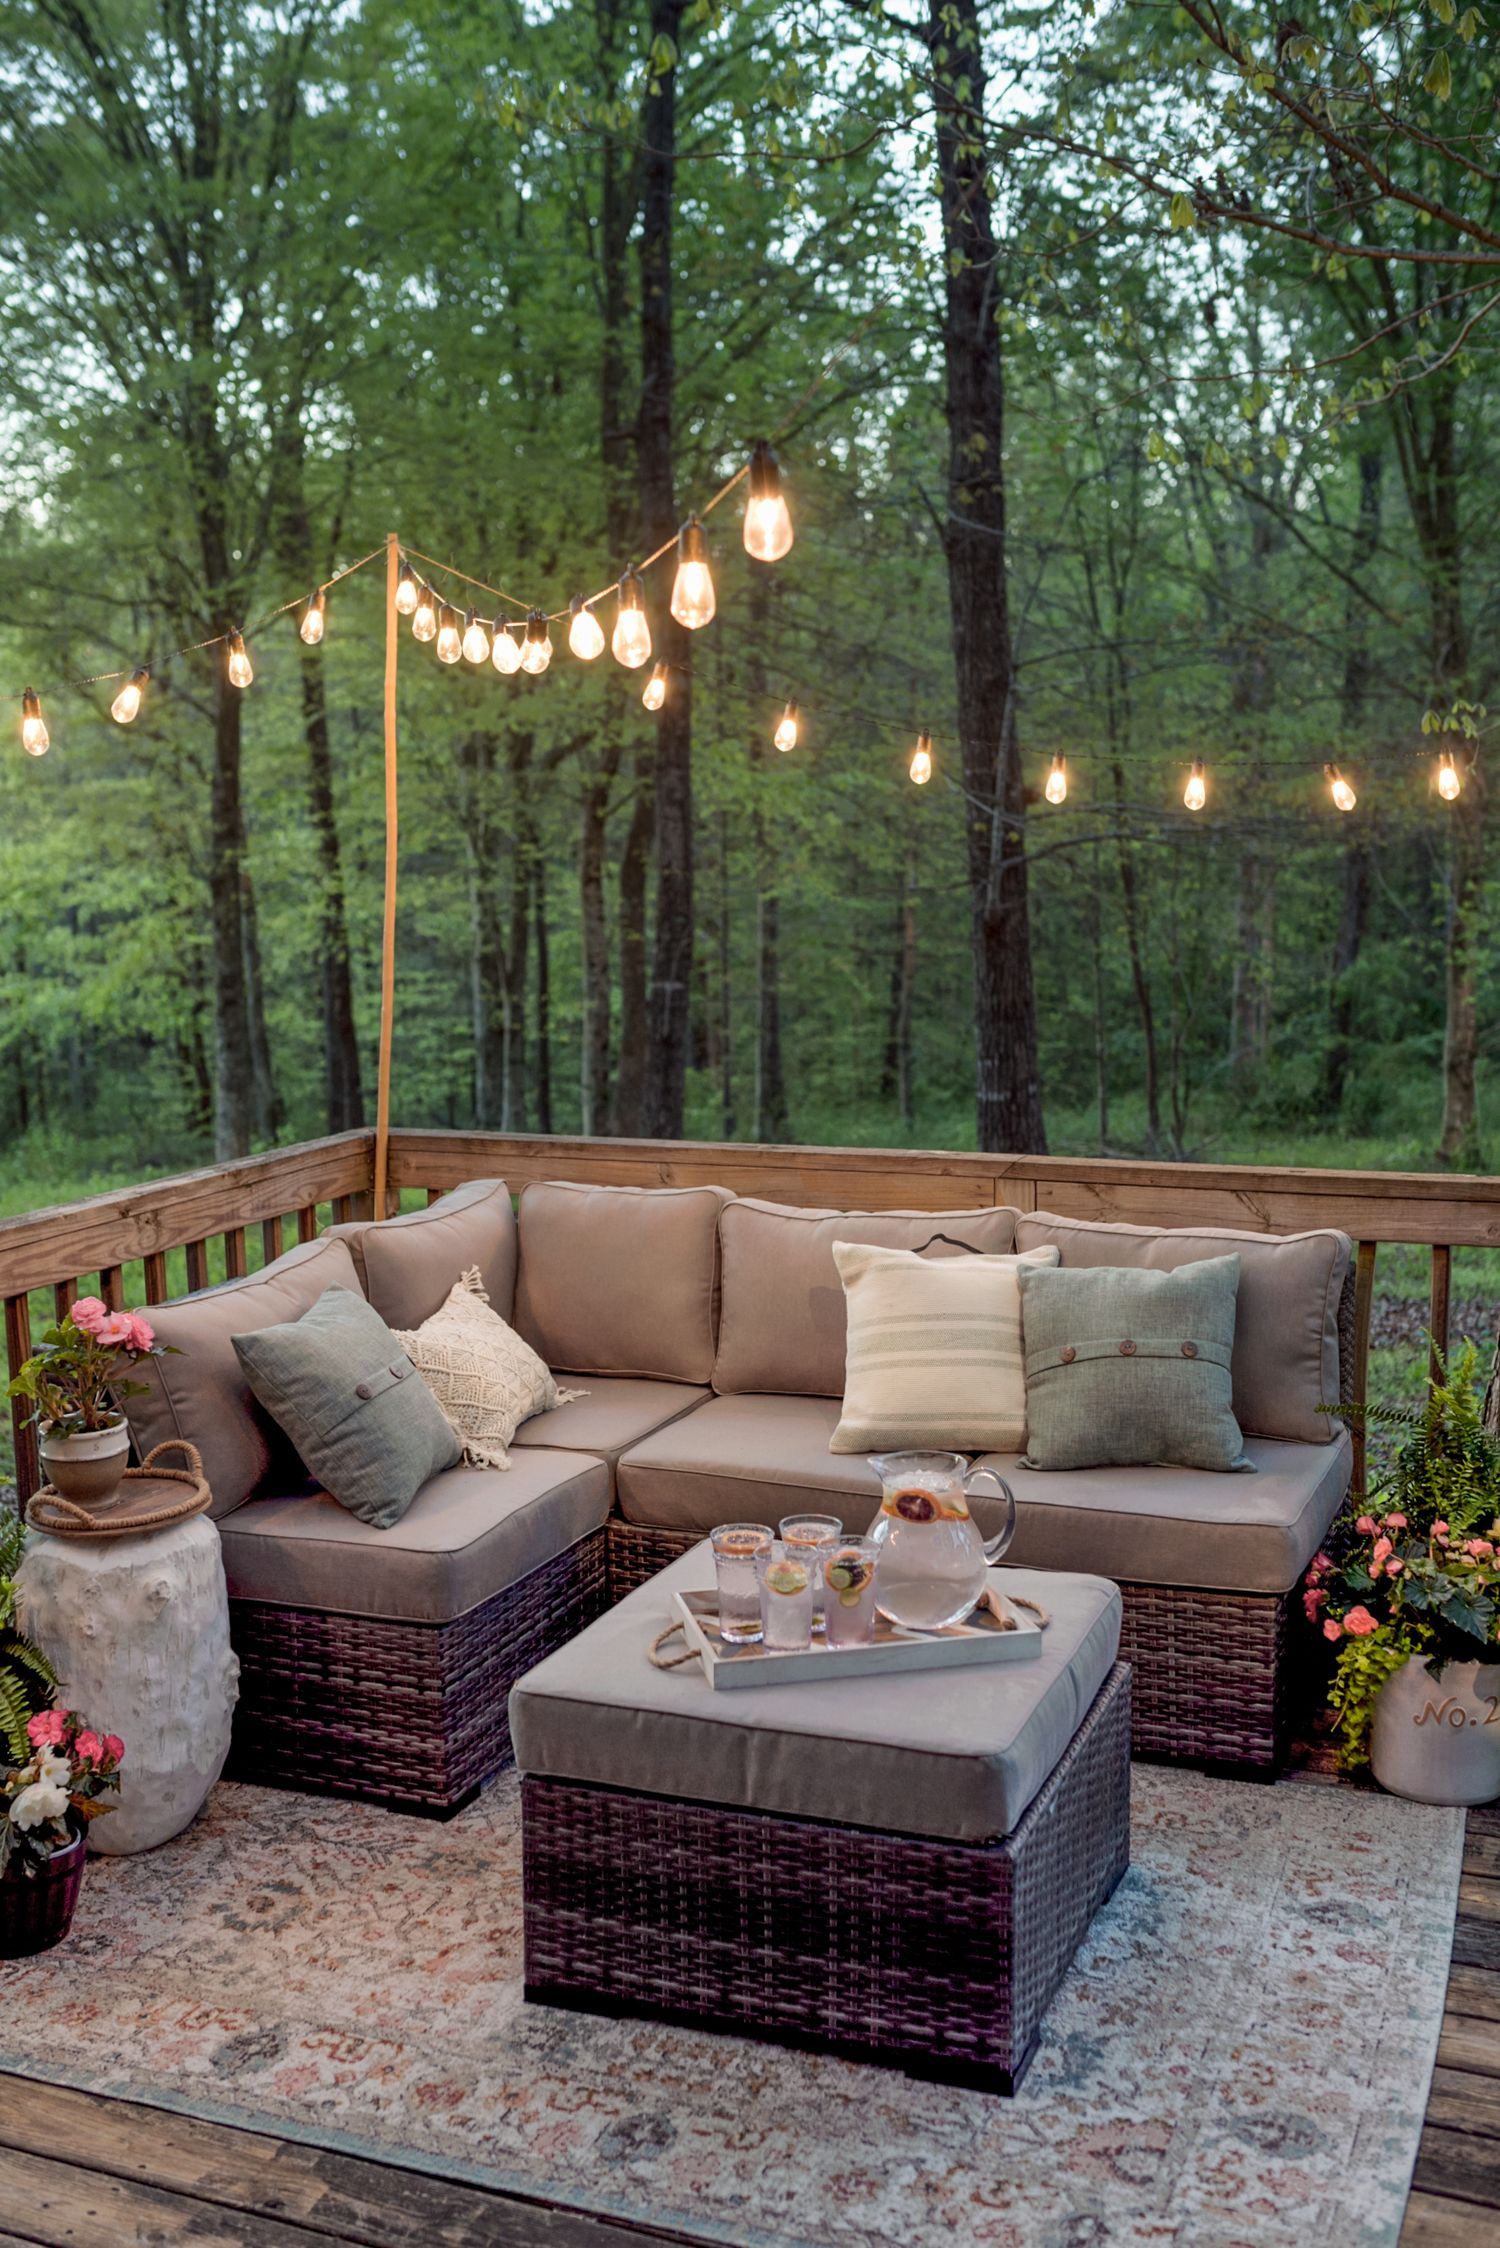 Outdoor Decorating Ideas Tips On How To Decorate Outdoors Outdoor Patio Decor Outdoor Deck Decorating Patio Decor